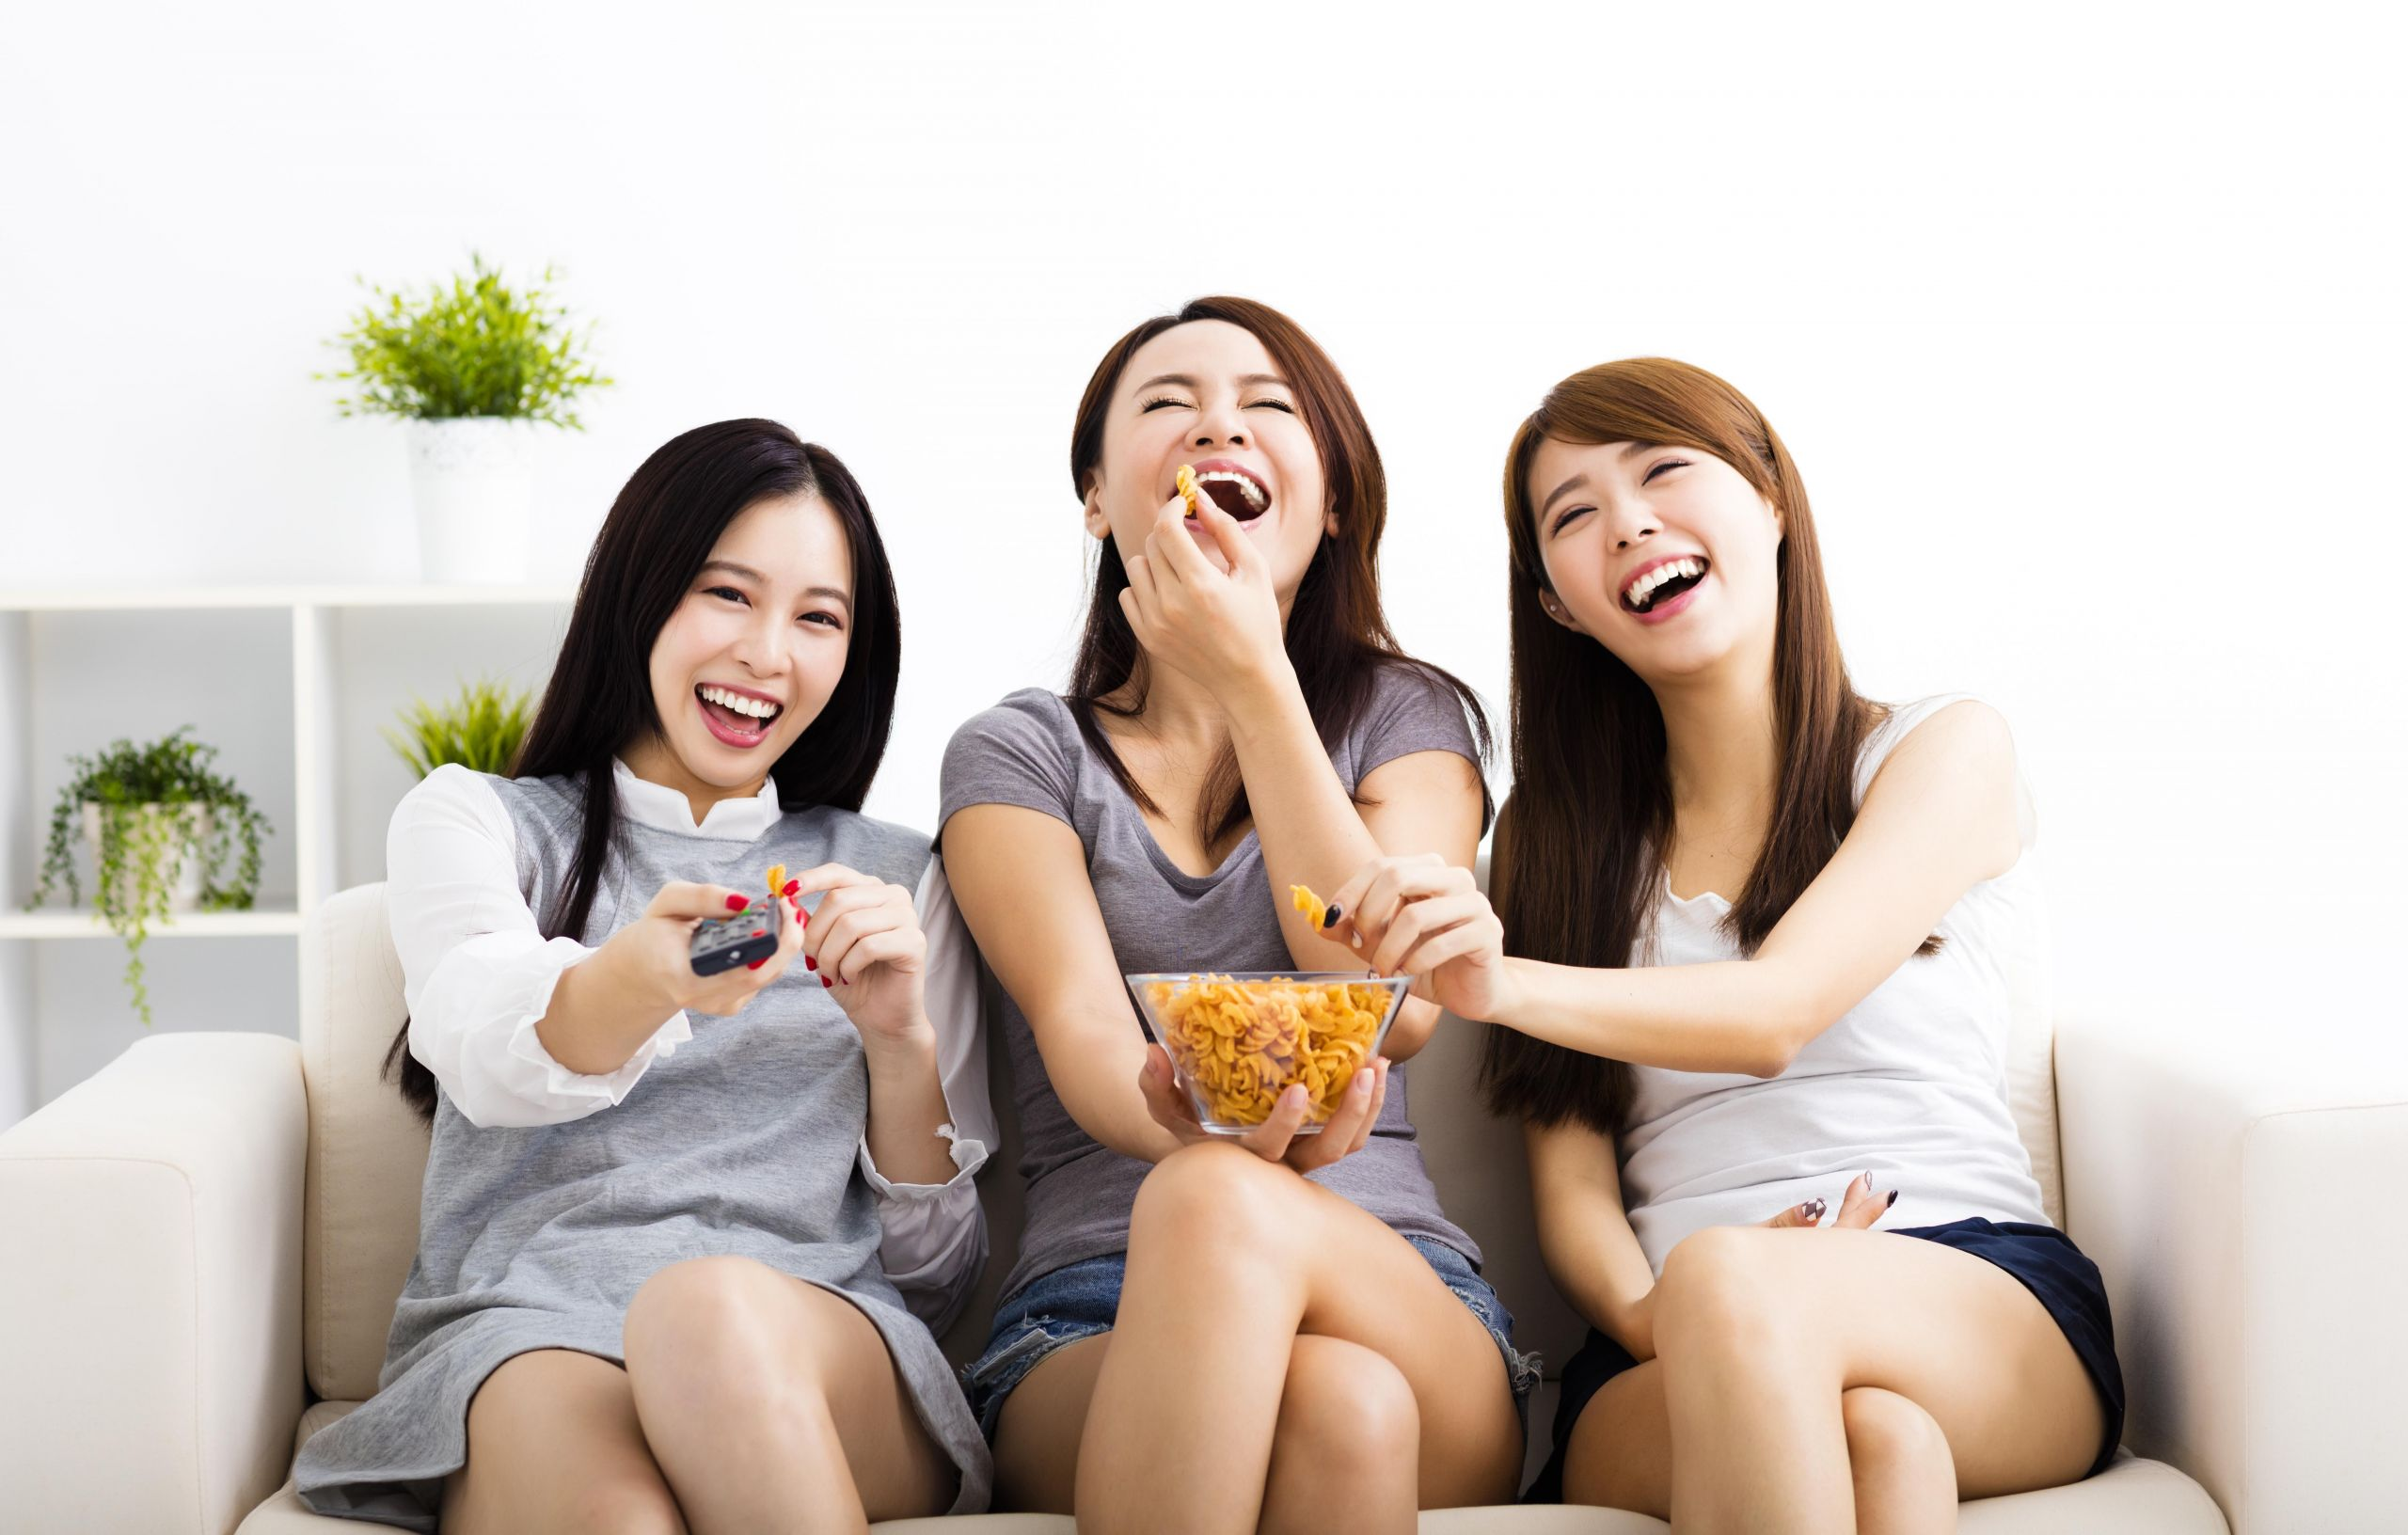 Sounds simple but it's effective - laughing is a great way to relieve your stress.